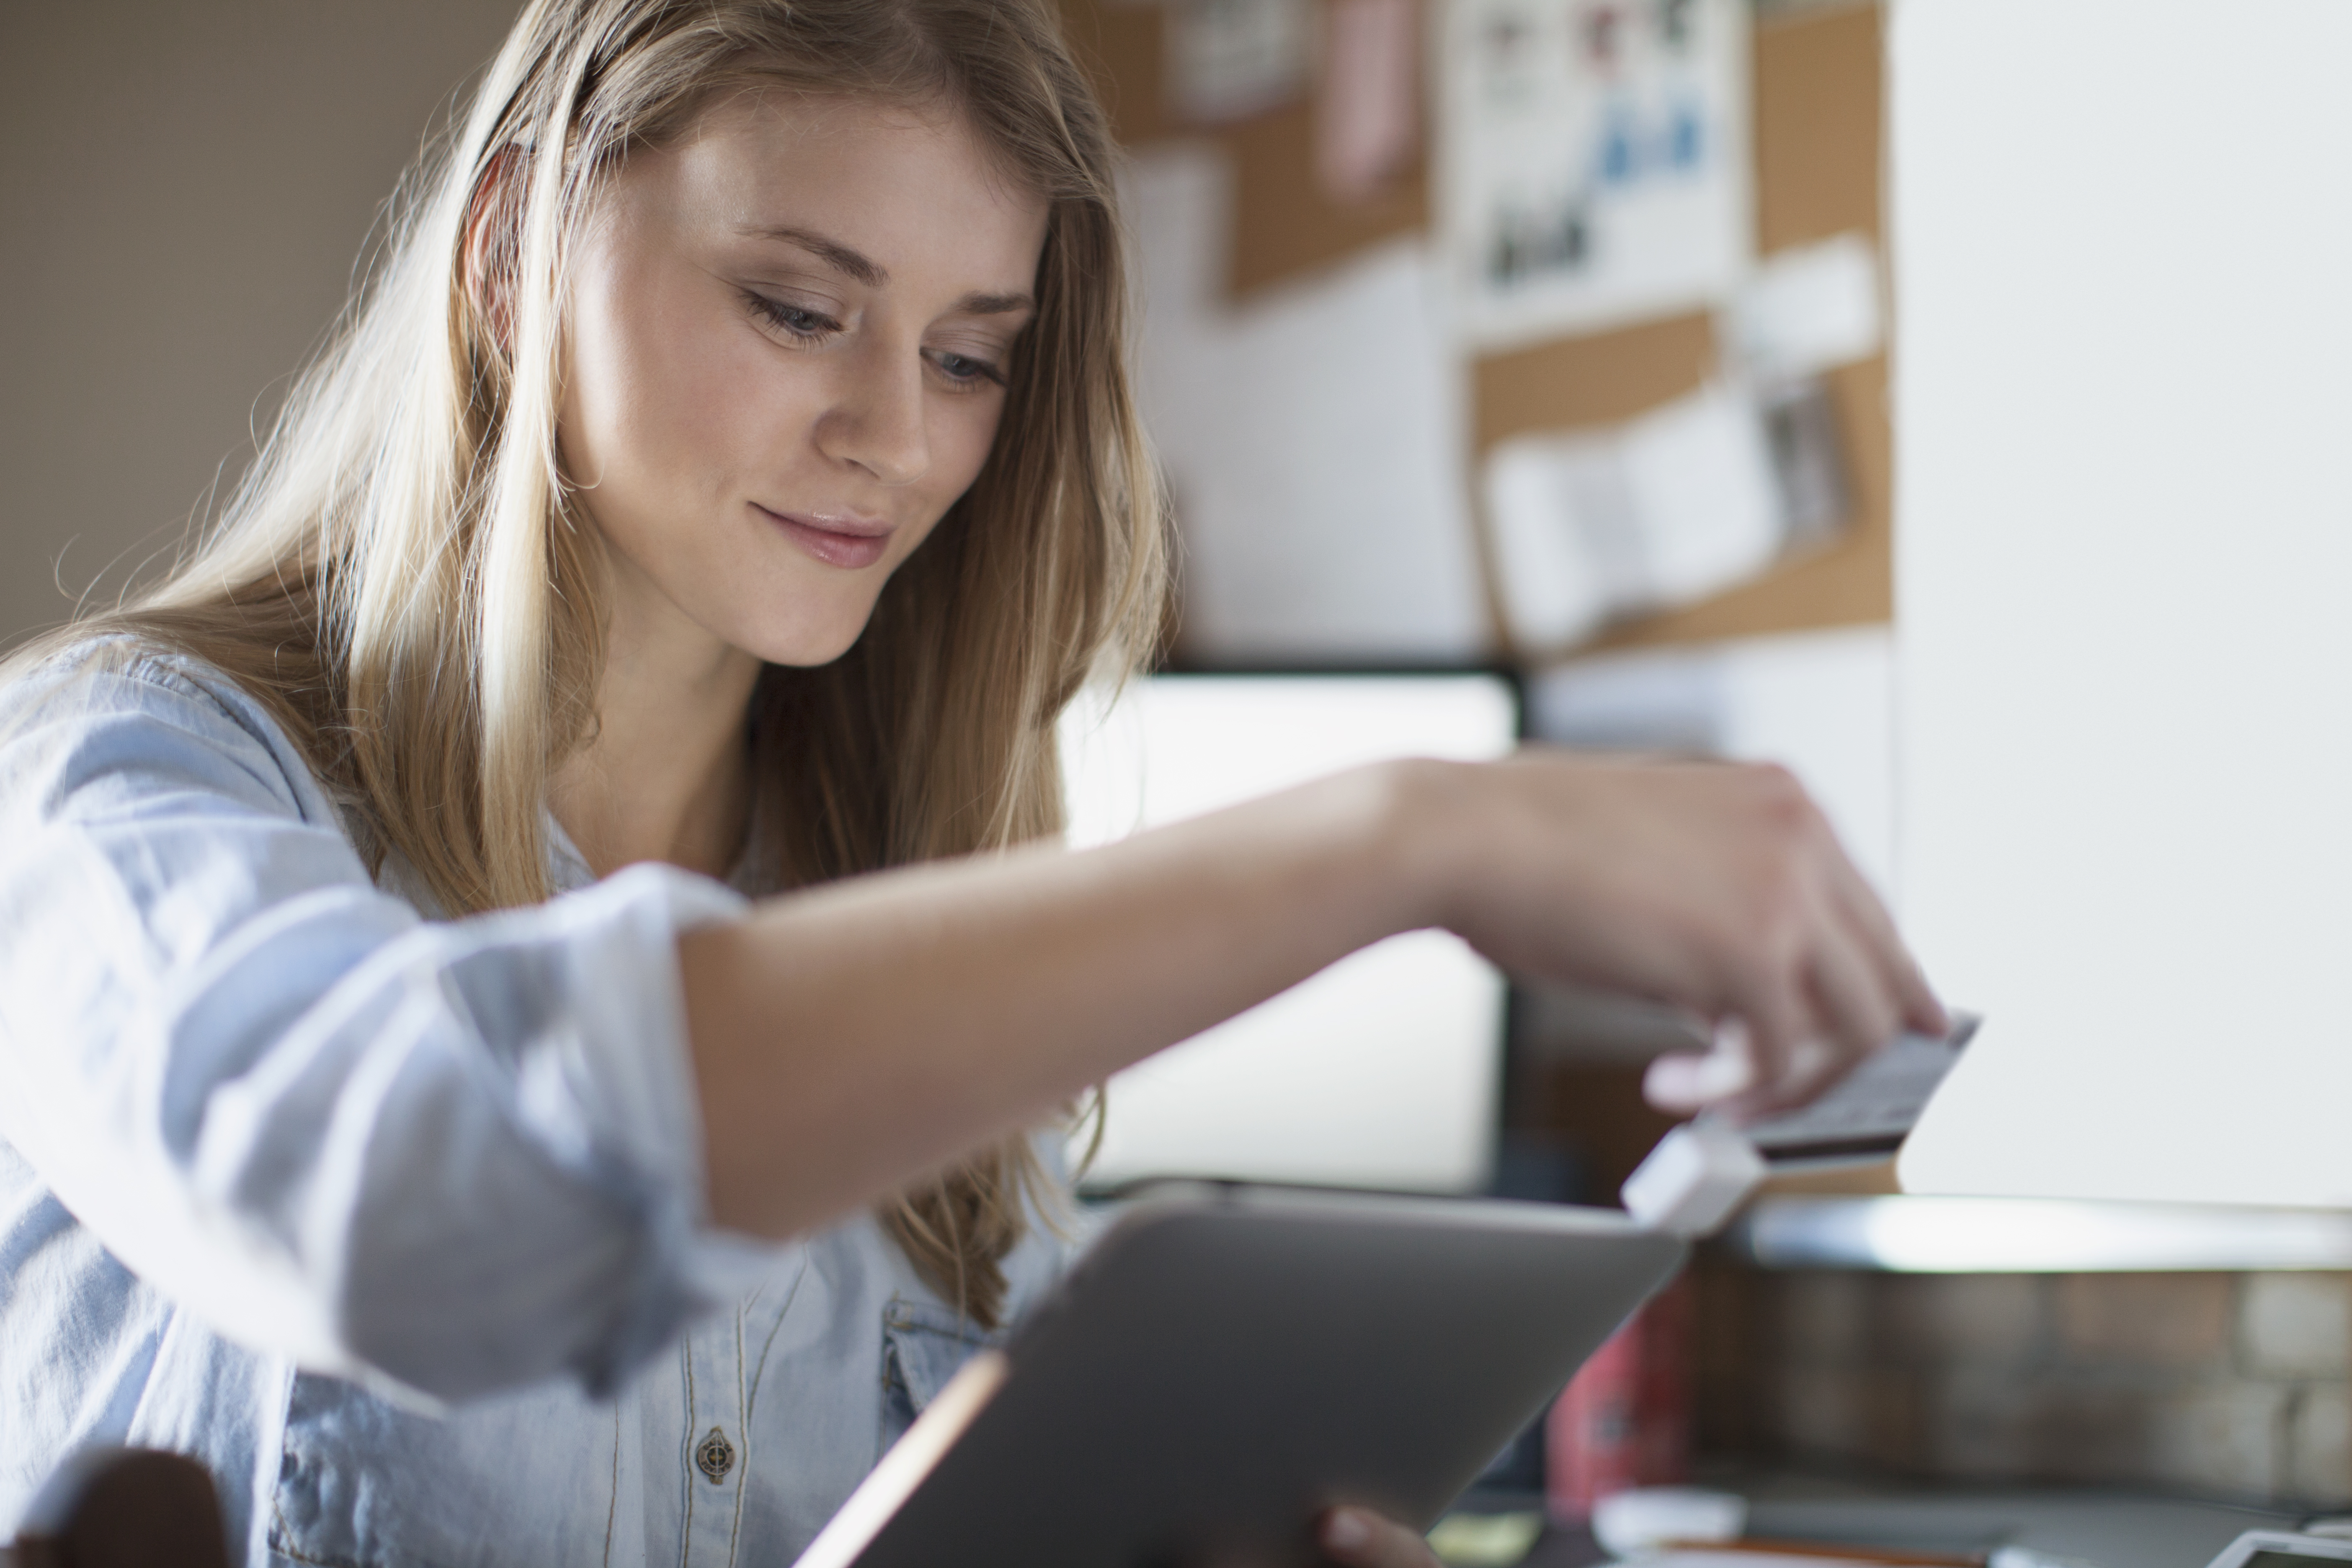 Pers.Bank Services - Woman swipping card on ipad